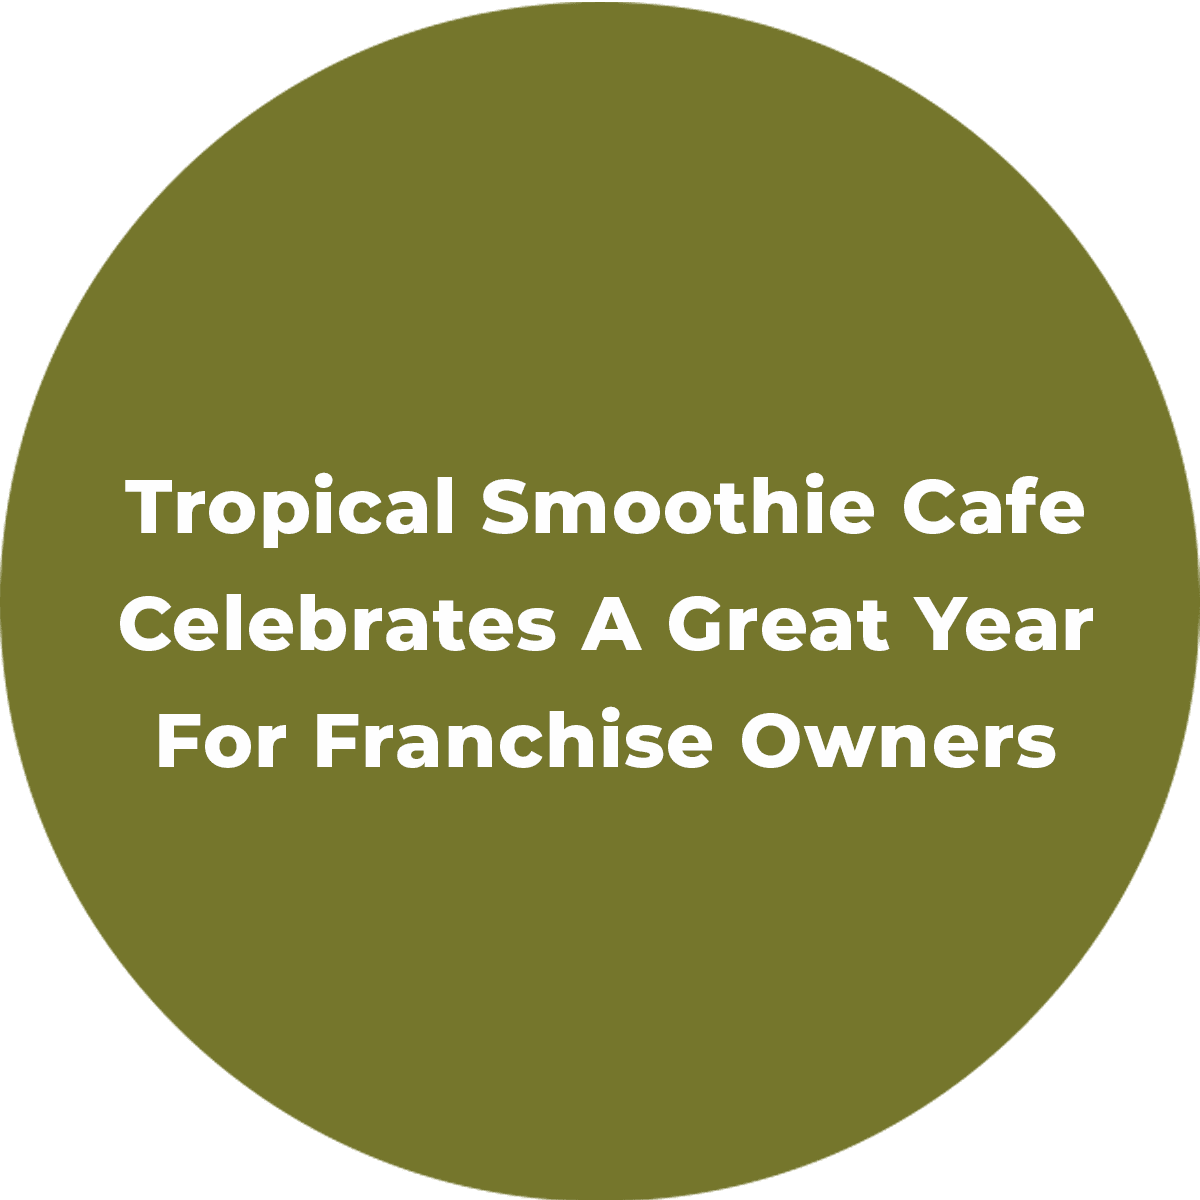 Tropical Smoothie Cafe Celebrates A Great Year For Franchise Owners